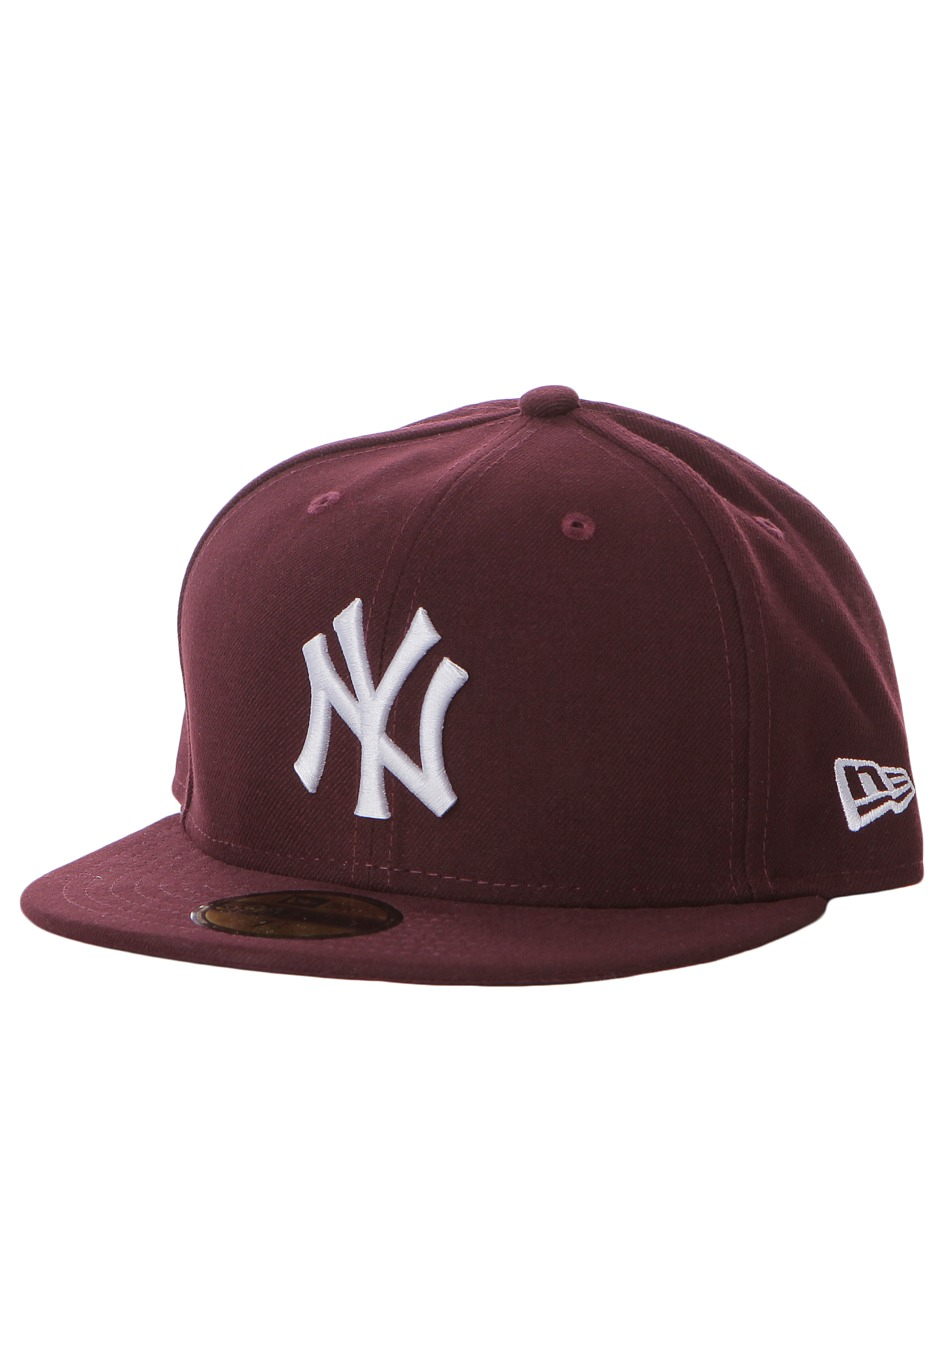 New Era - League Basic MLB New York Yankees Maroon White - Cap - Streetwear  Shop - Impericon.com Worldwide 89e8035a090